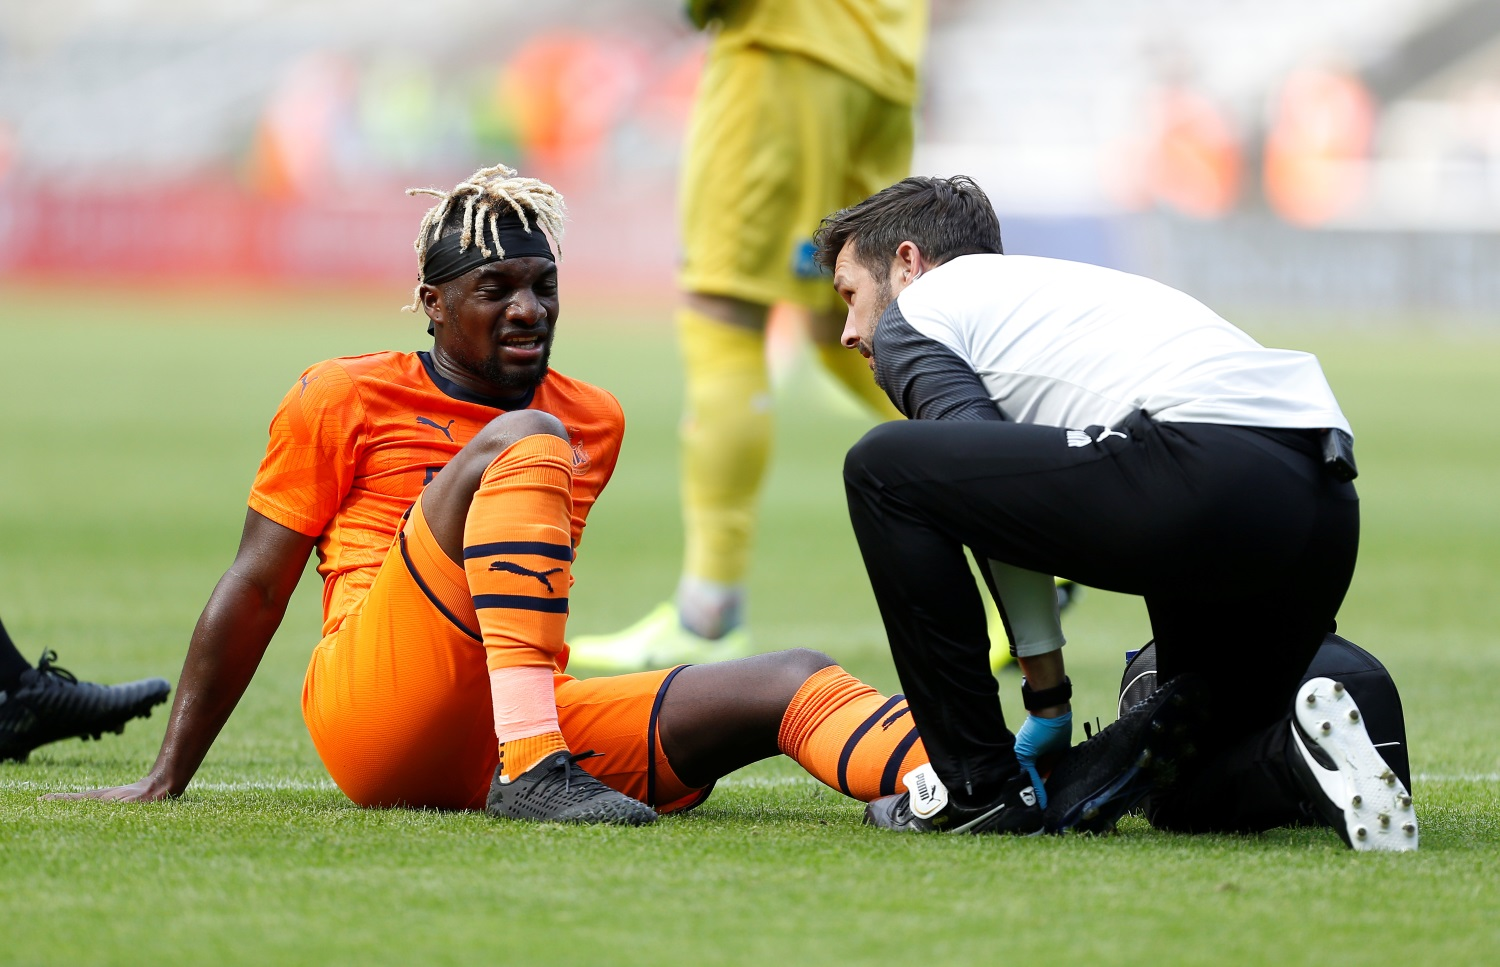 Tottenham's Win Comes At A Cost After 'Nightmare' Injury To Saint-Maximin